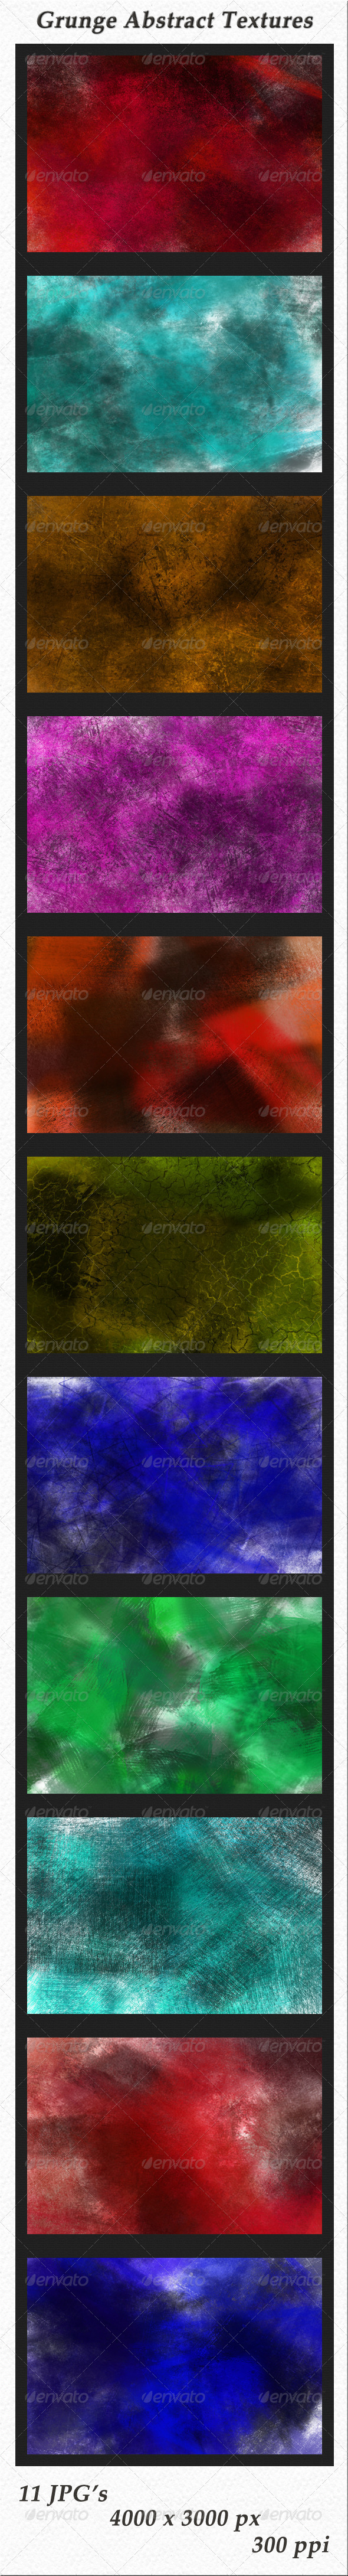 GraphicRiver Grunge Abstract Textures 5997500